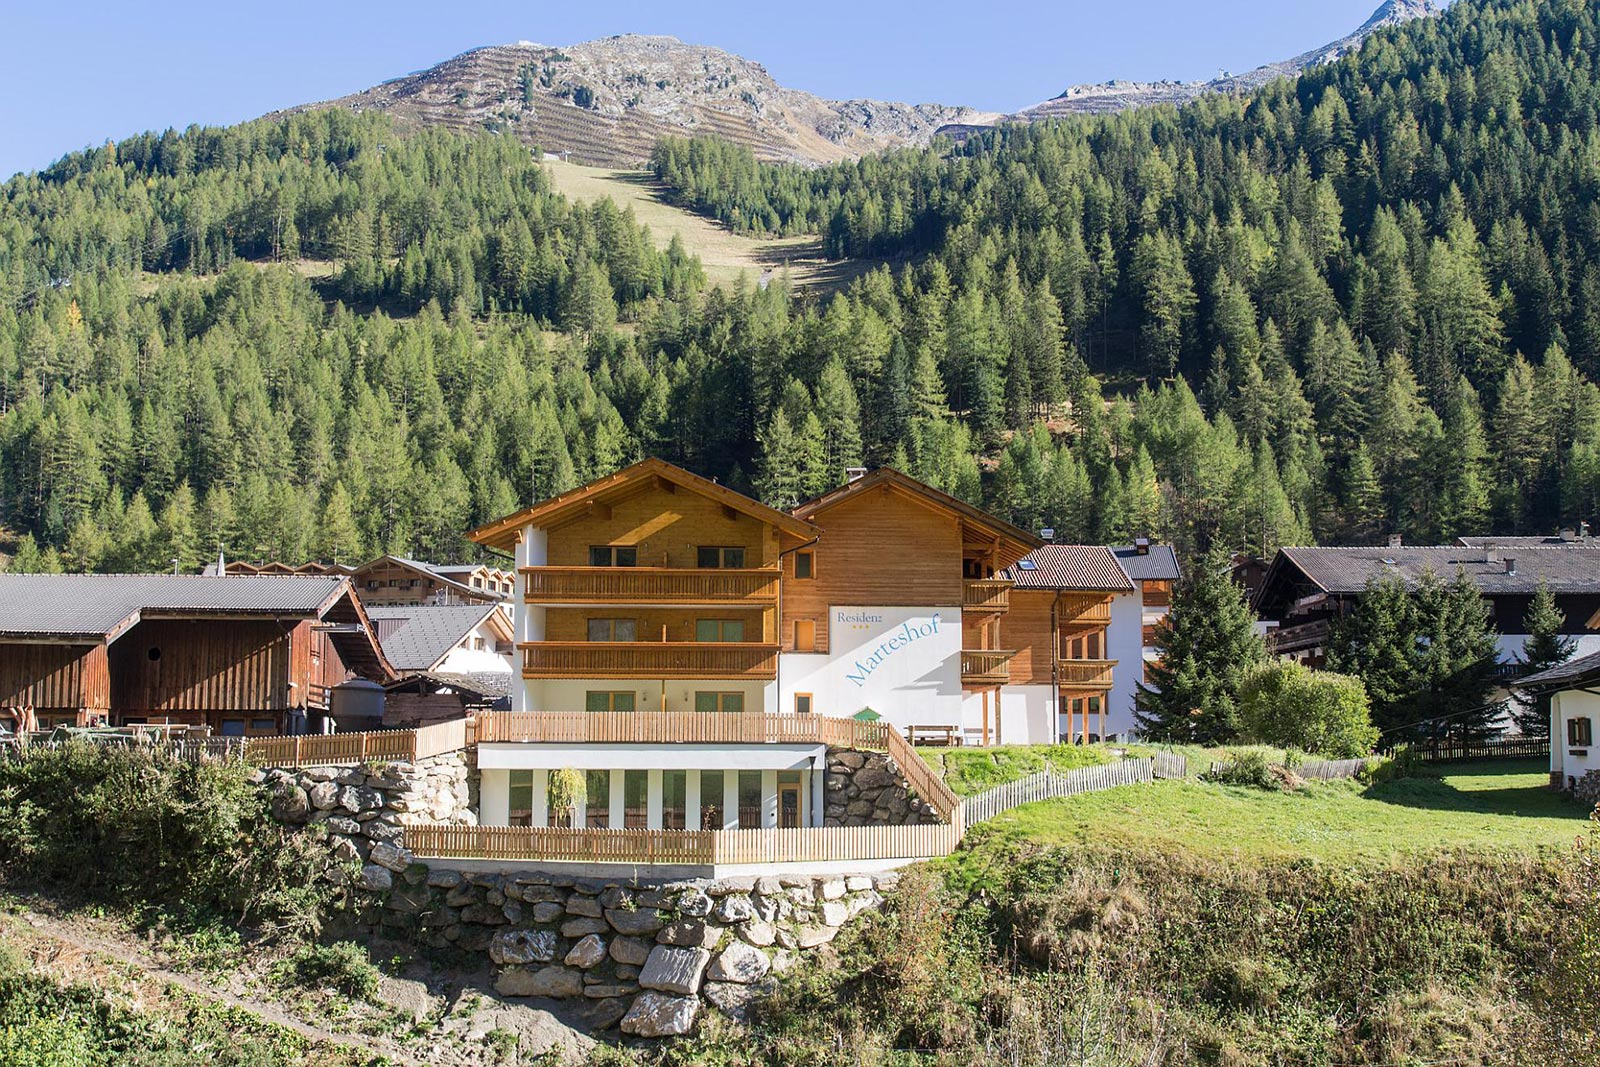 Residence Marteshof near Moso in South Tyrol